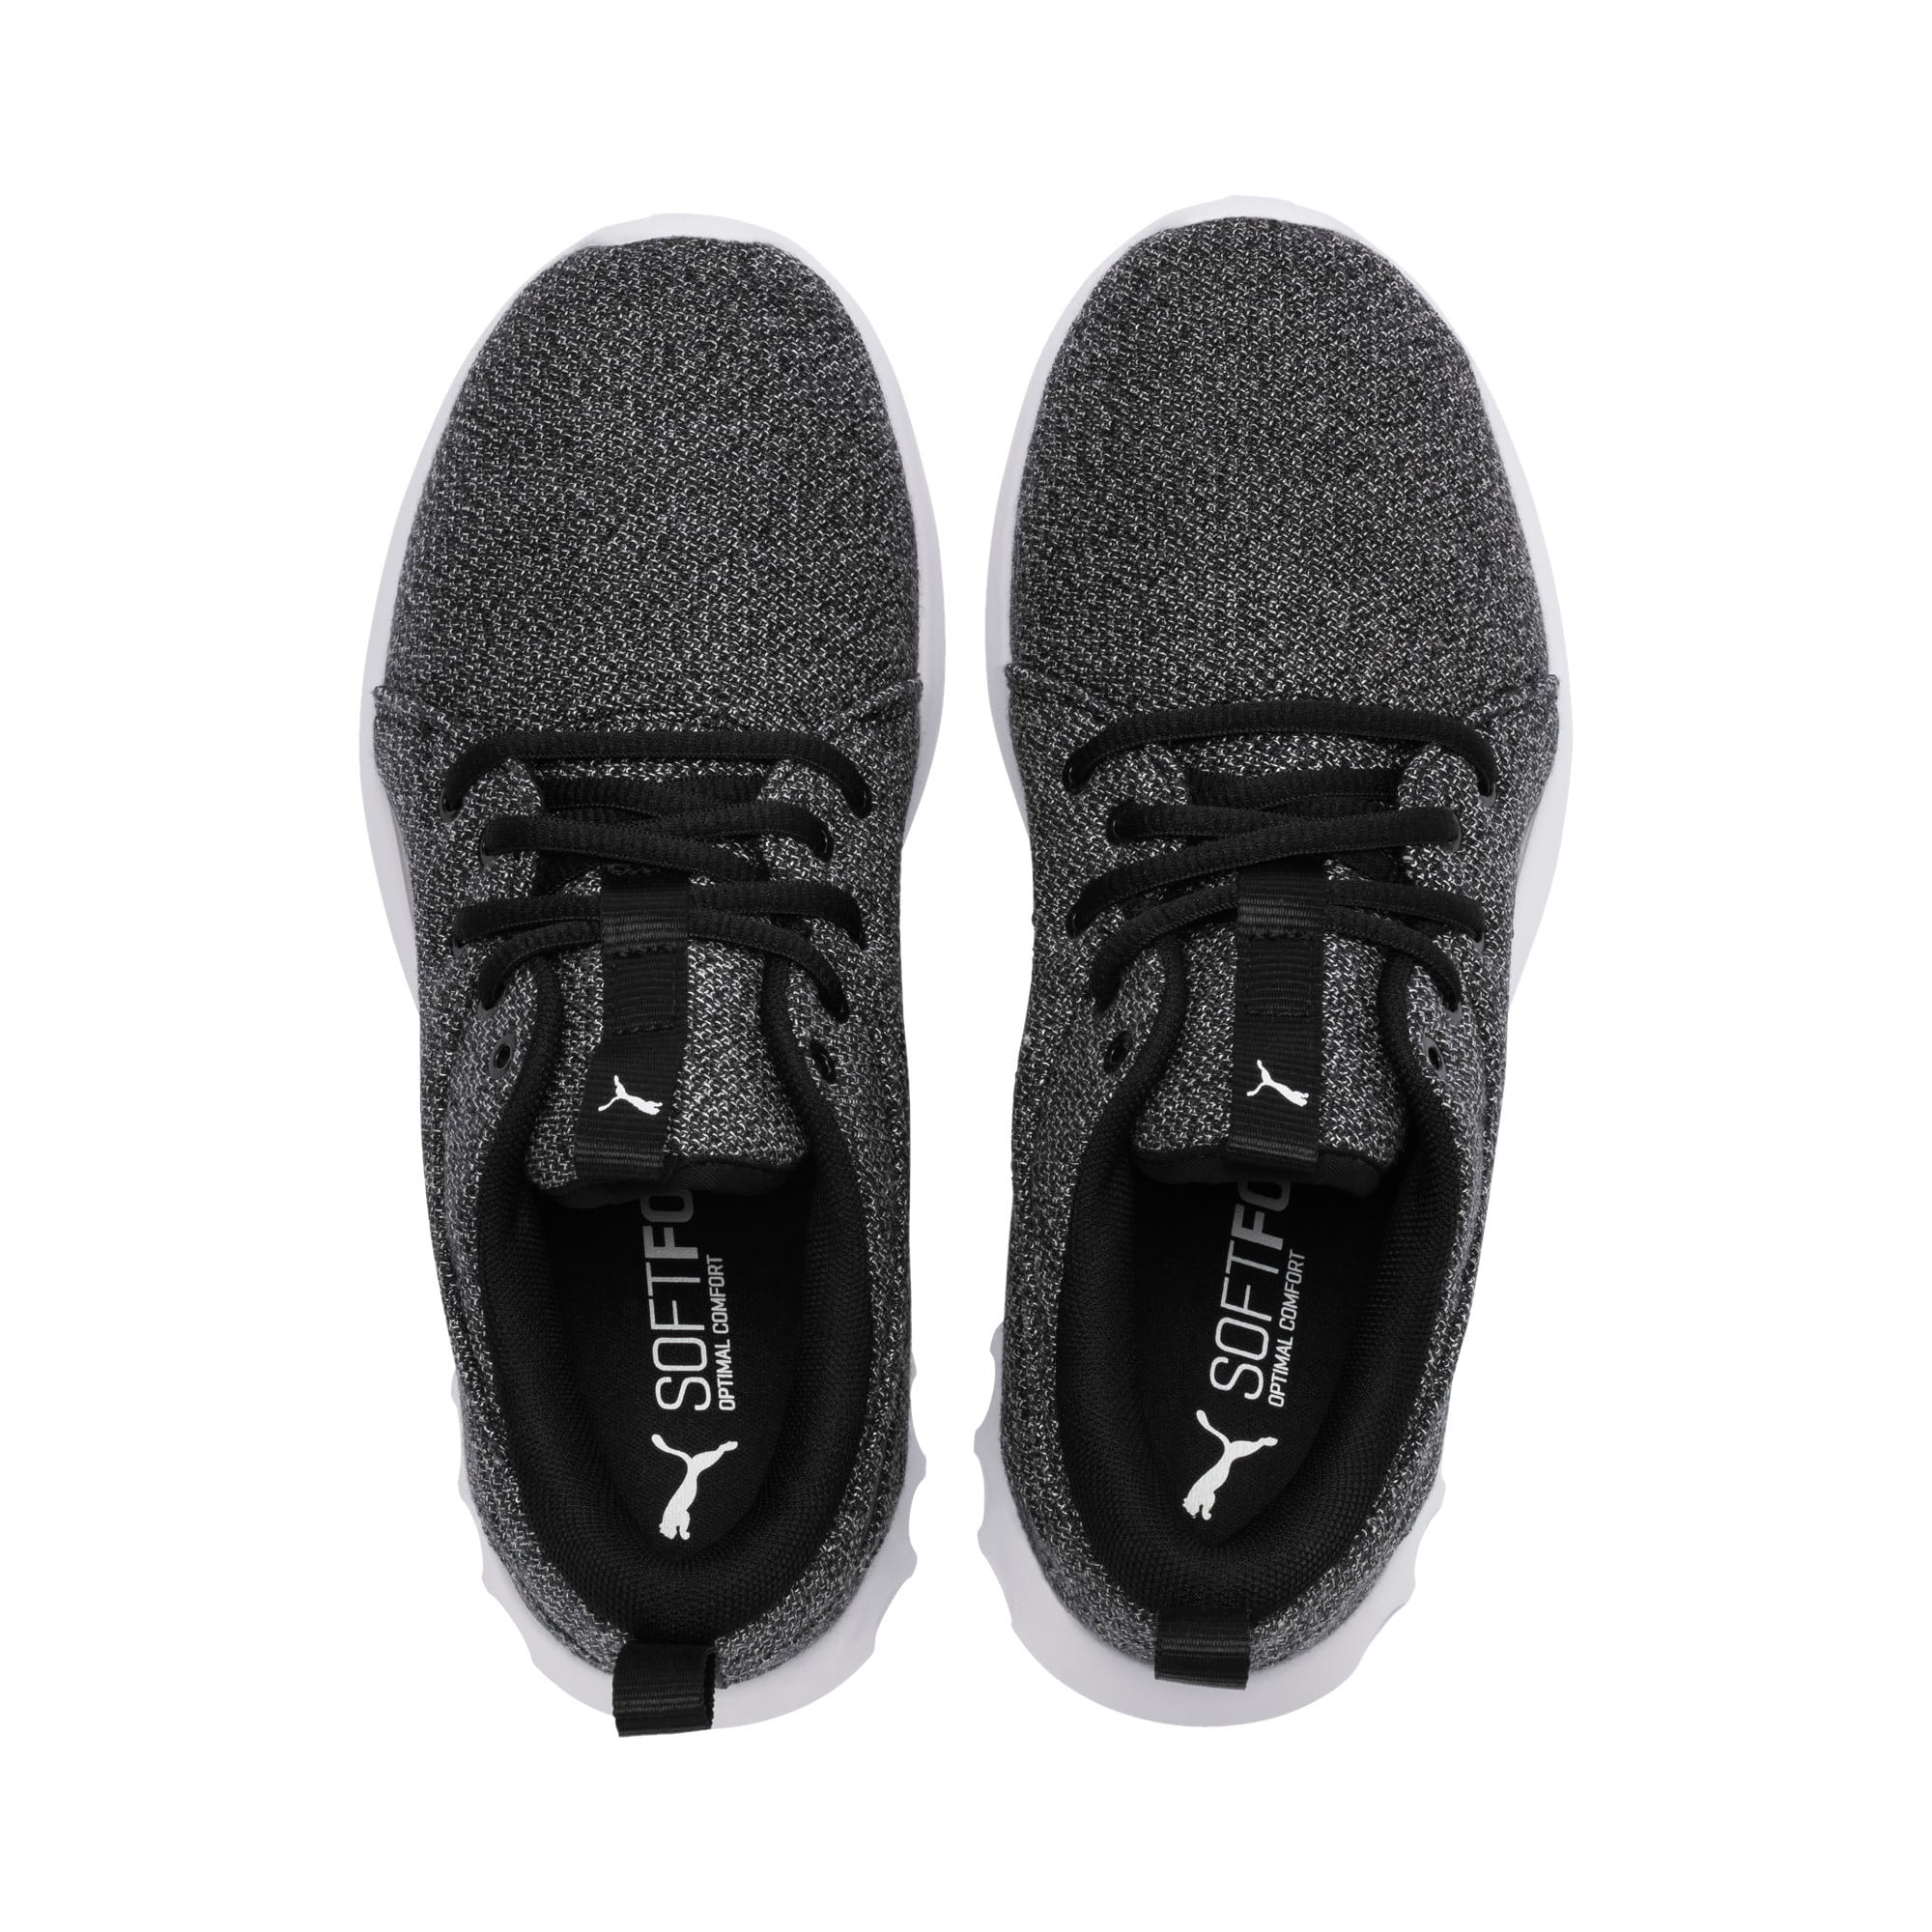 Thumbnail 6 of Carson 2 Knit Damen Sneaker, Puma Black-Puma White, medium